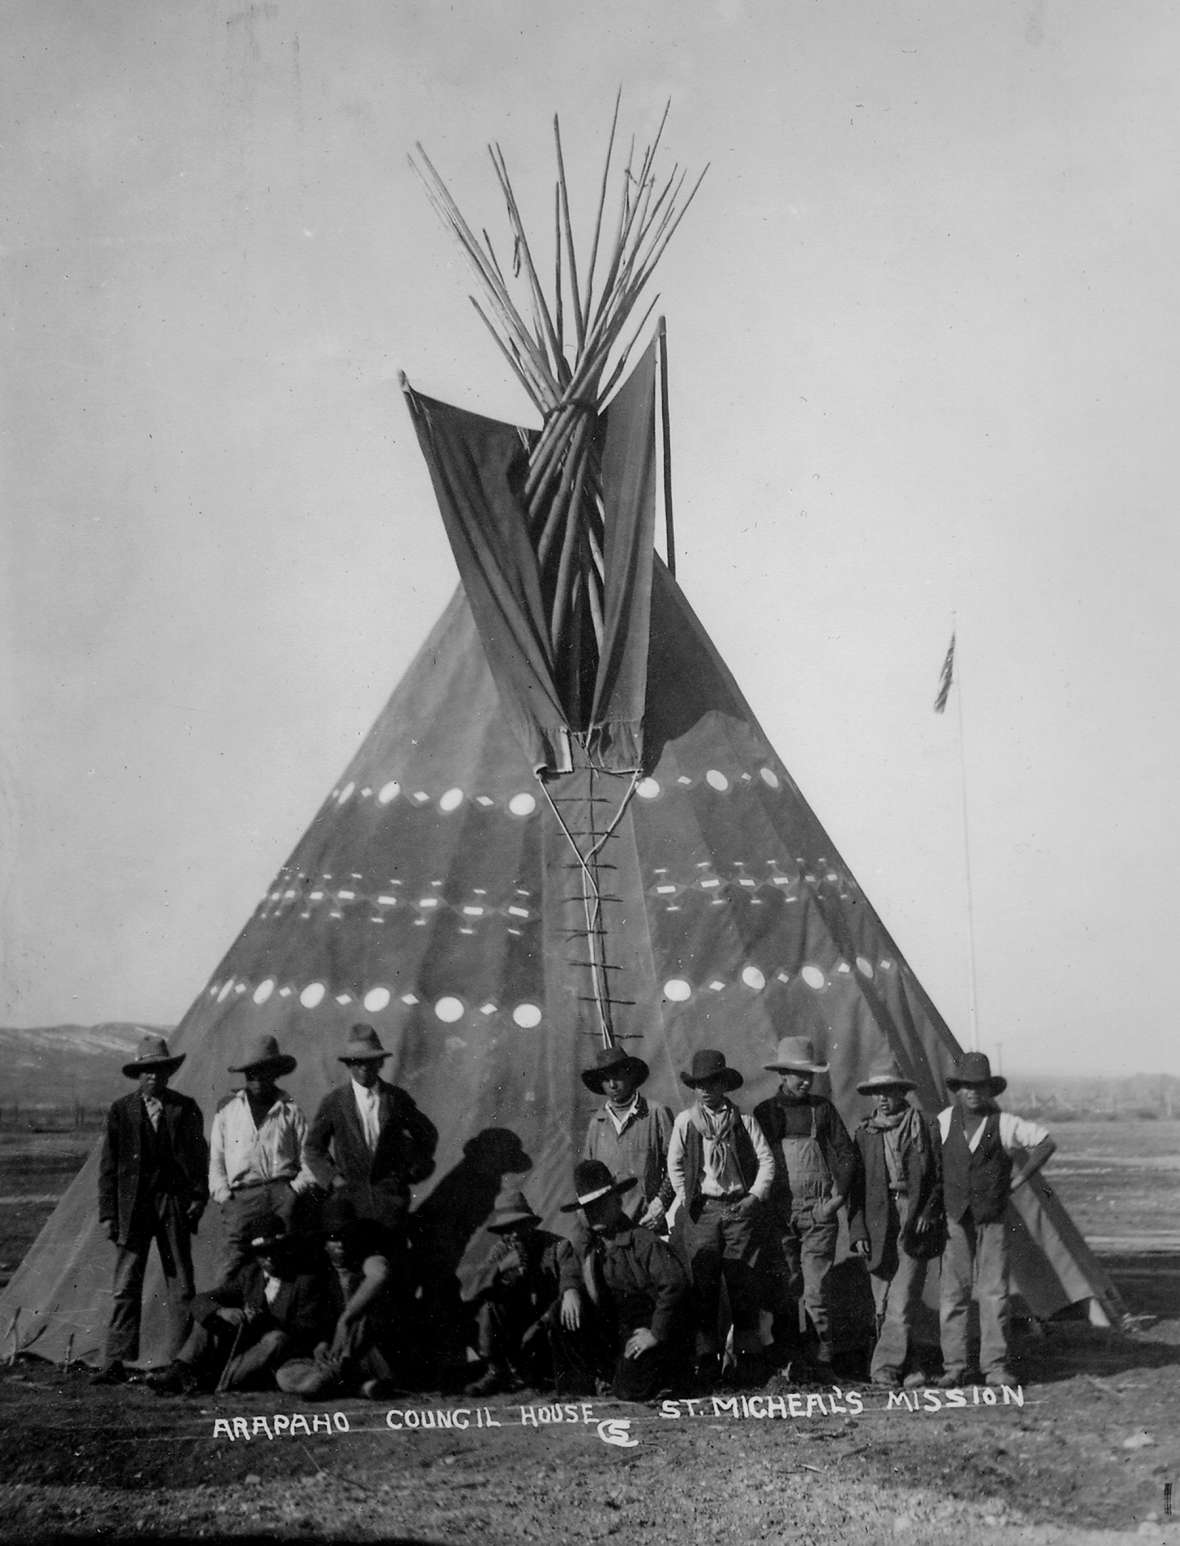 For a time in the 1920s a tipi painted with symbols served as a council house for the Arapaho Tribe at St. Michael's Mission at Ethete, Wyo. Charles Sproul photo, Riverton Museum.